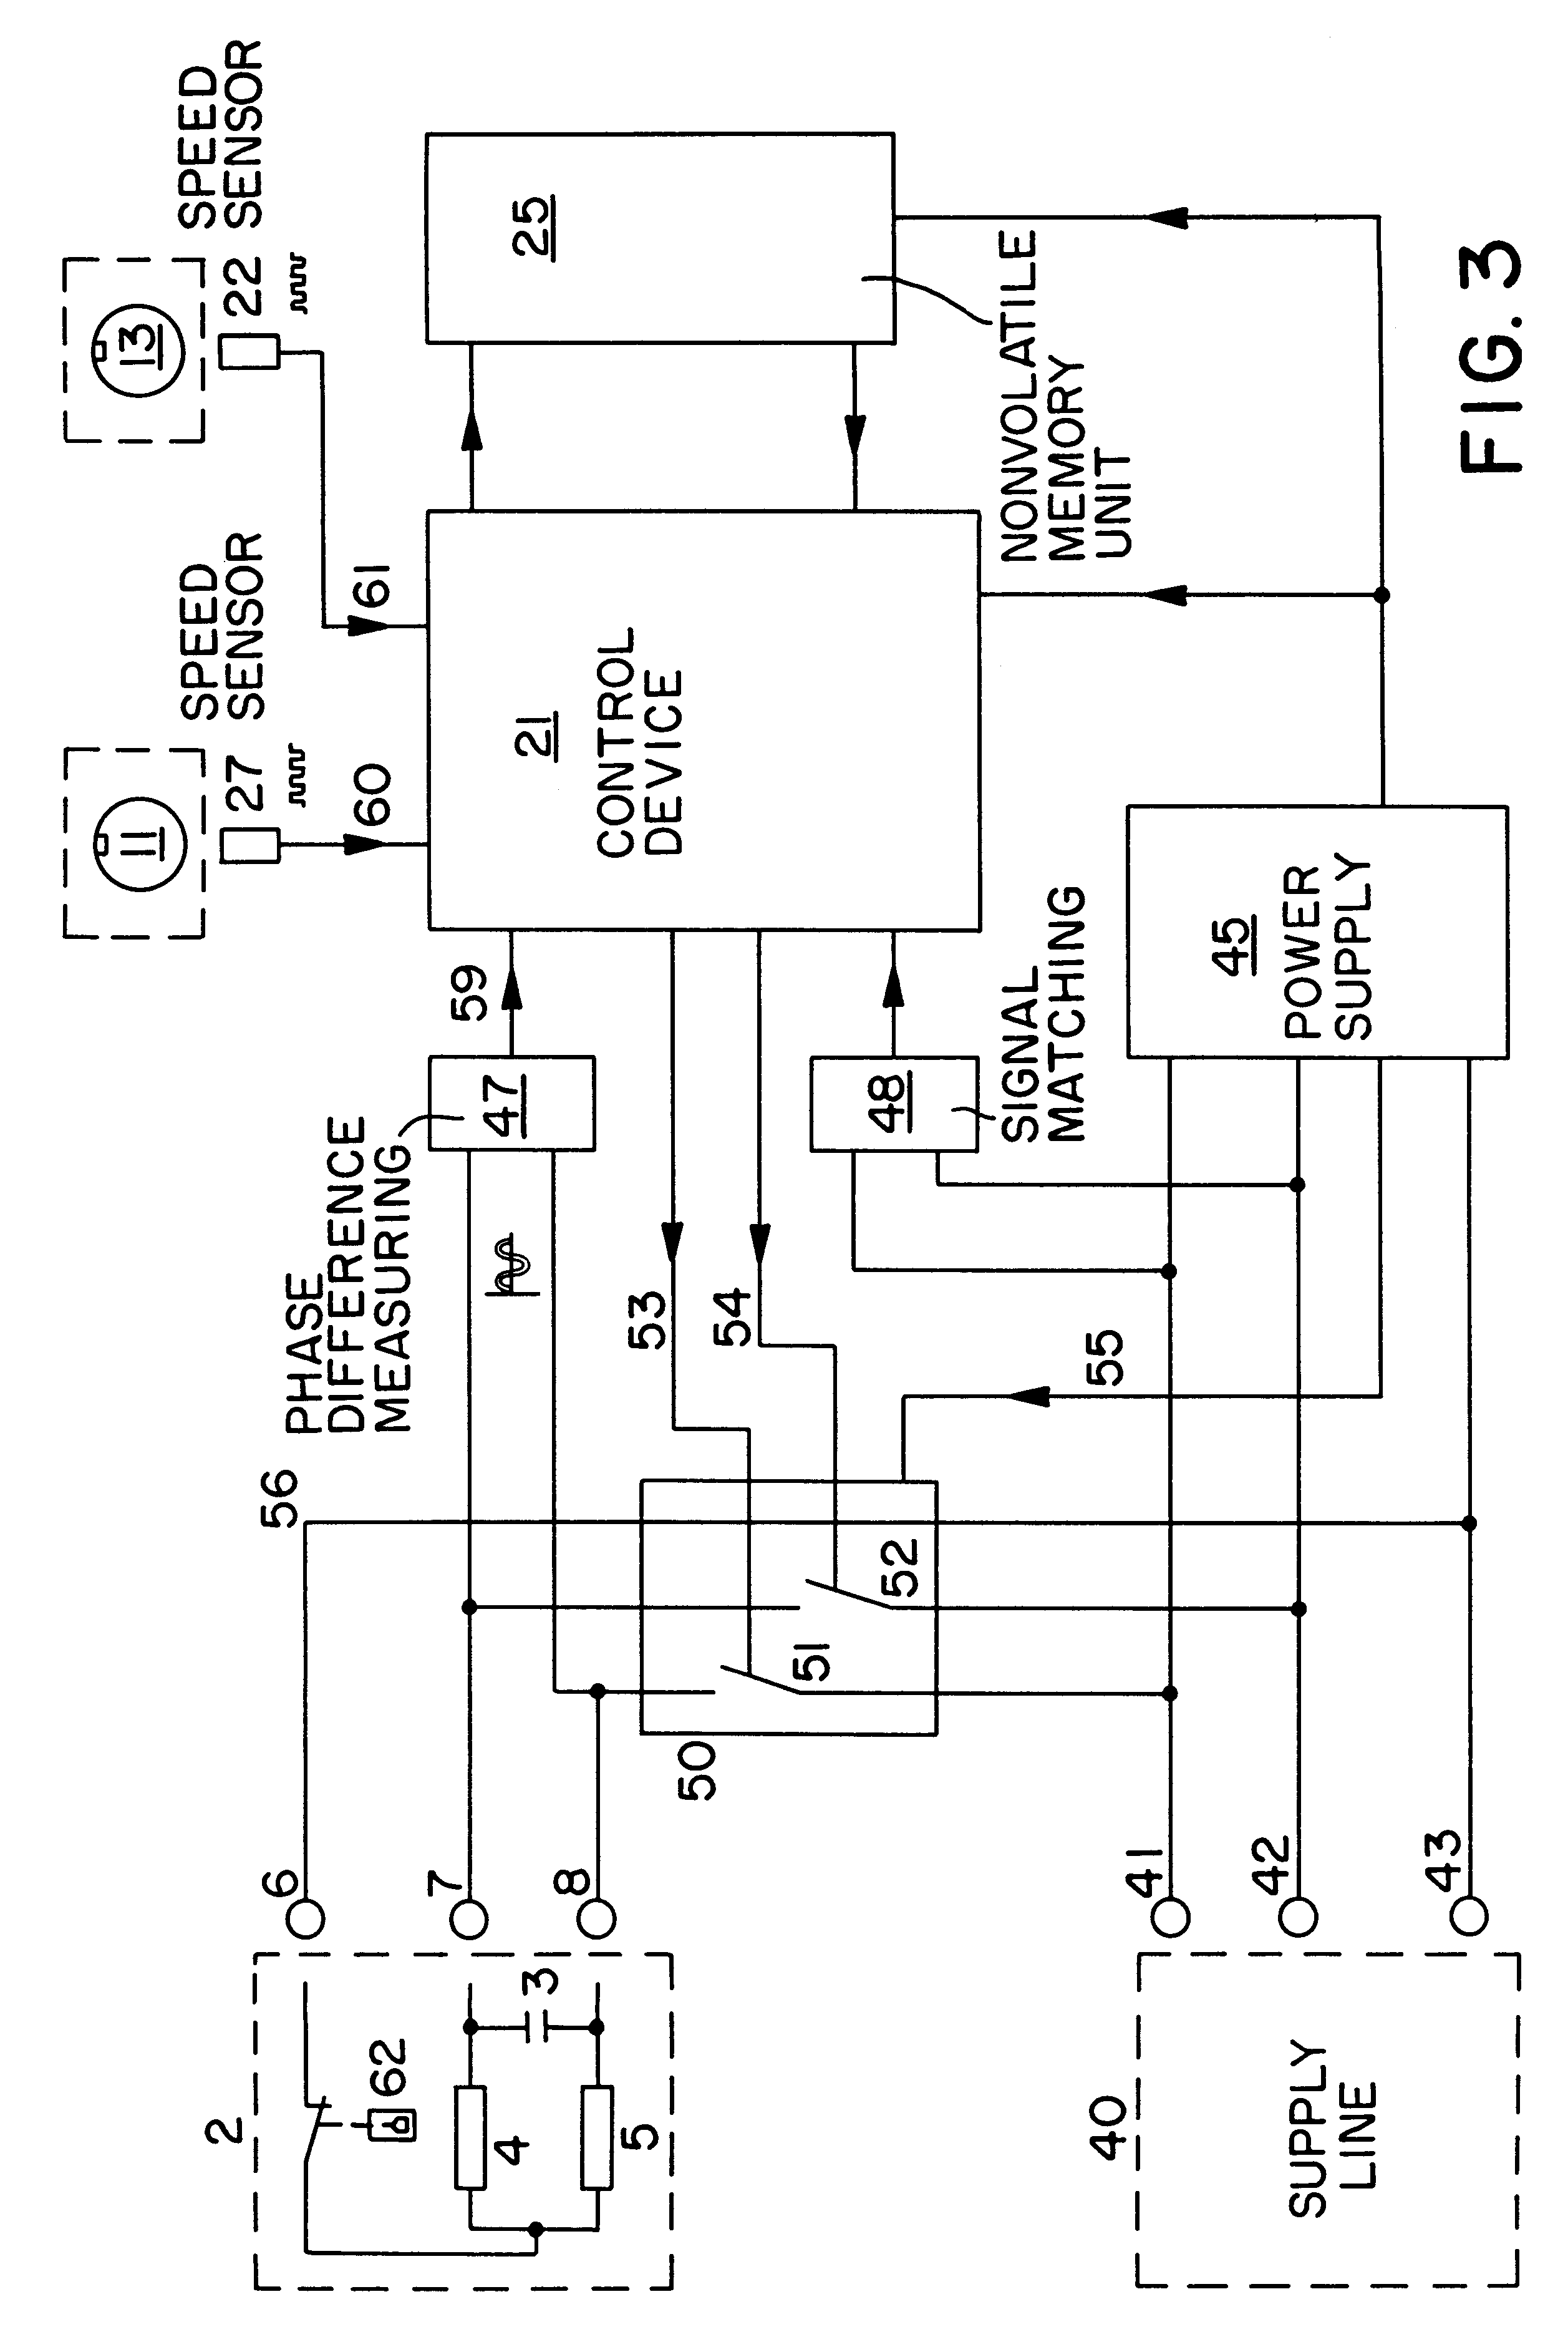 patent us6215265 system and method for controlling activating actuator motors for various